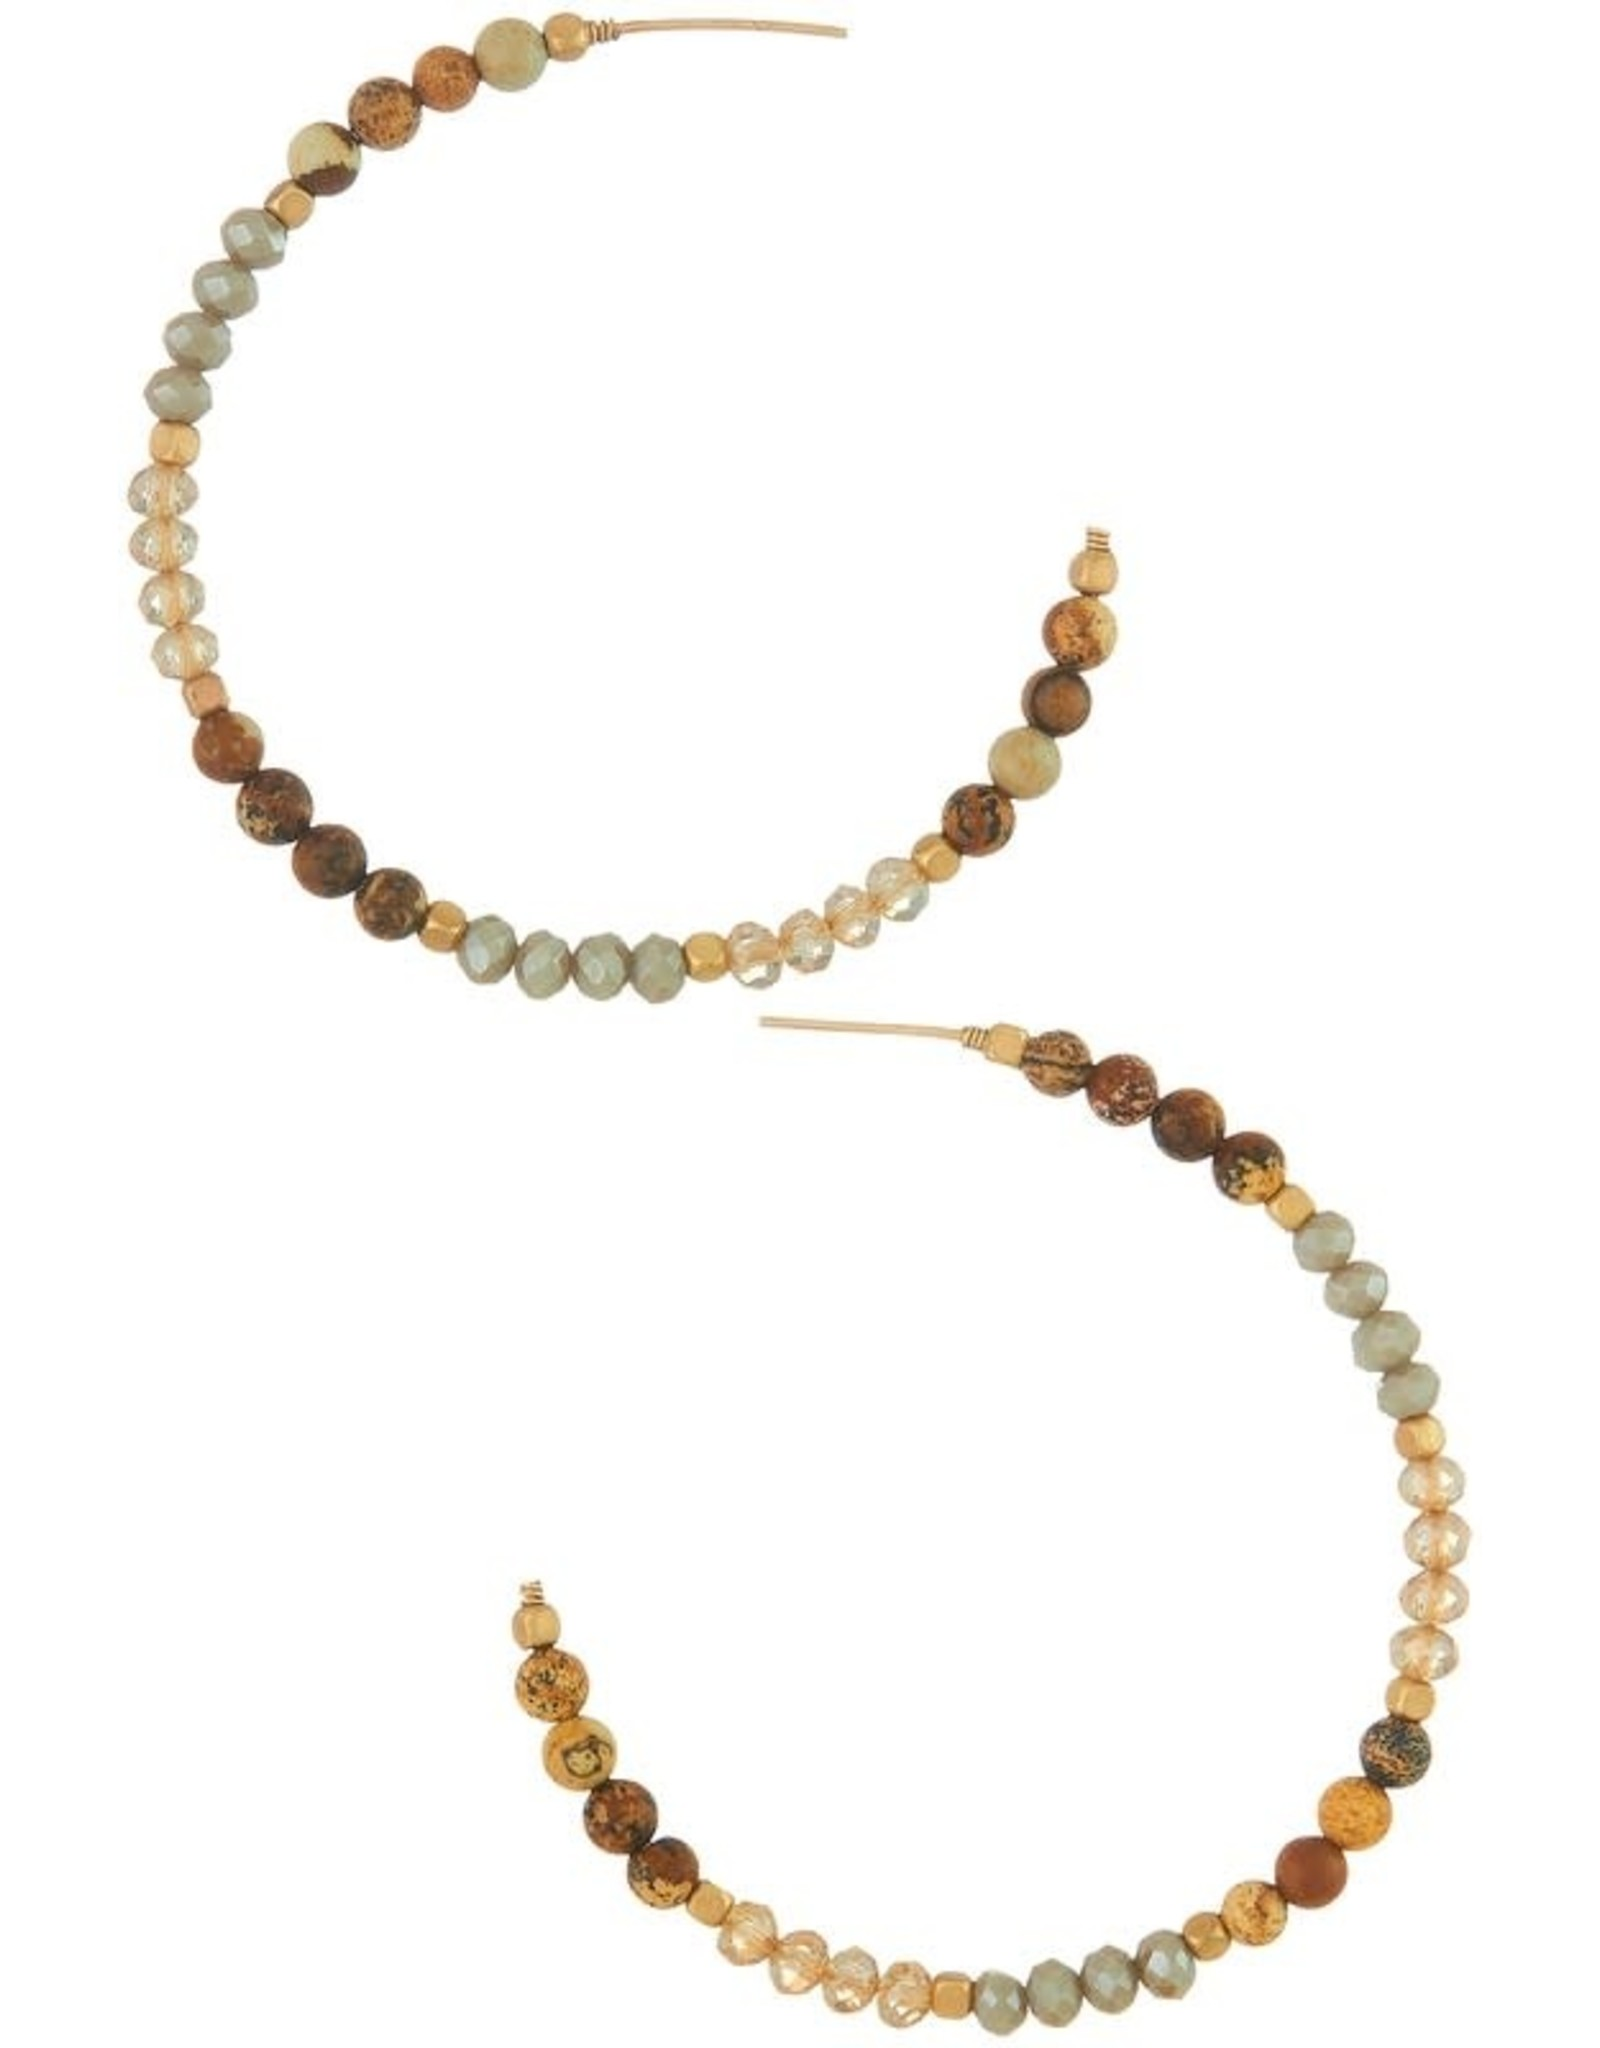 BROWN GLASS AND STONE BEAD OPEN HOOP EARRING